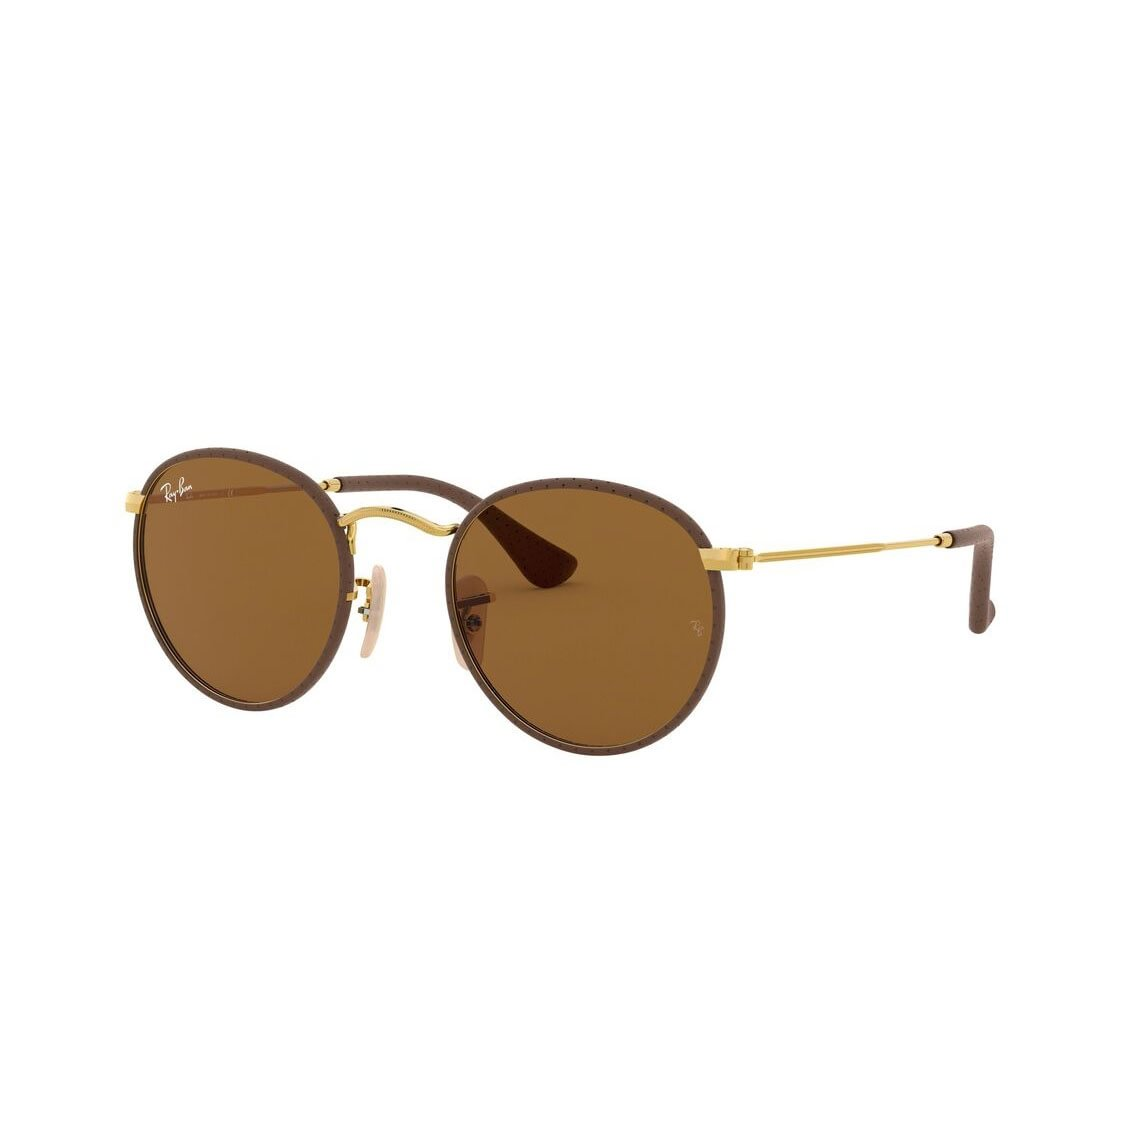 Ray-Ban Round Craft RB3475Q 9041 50